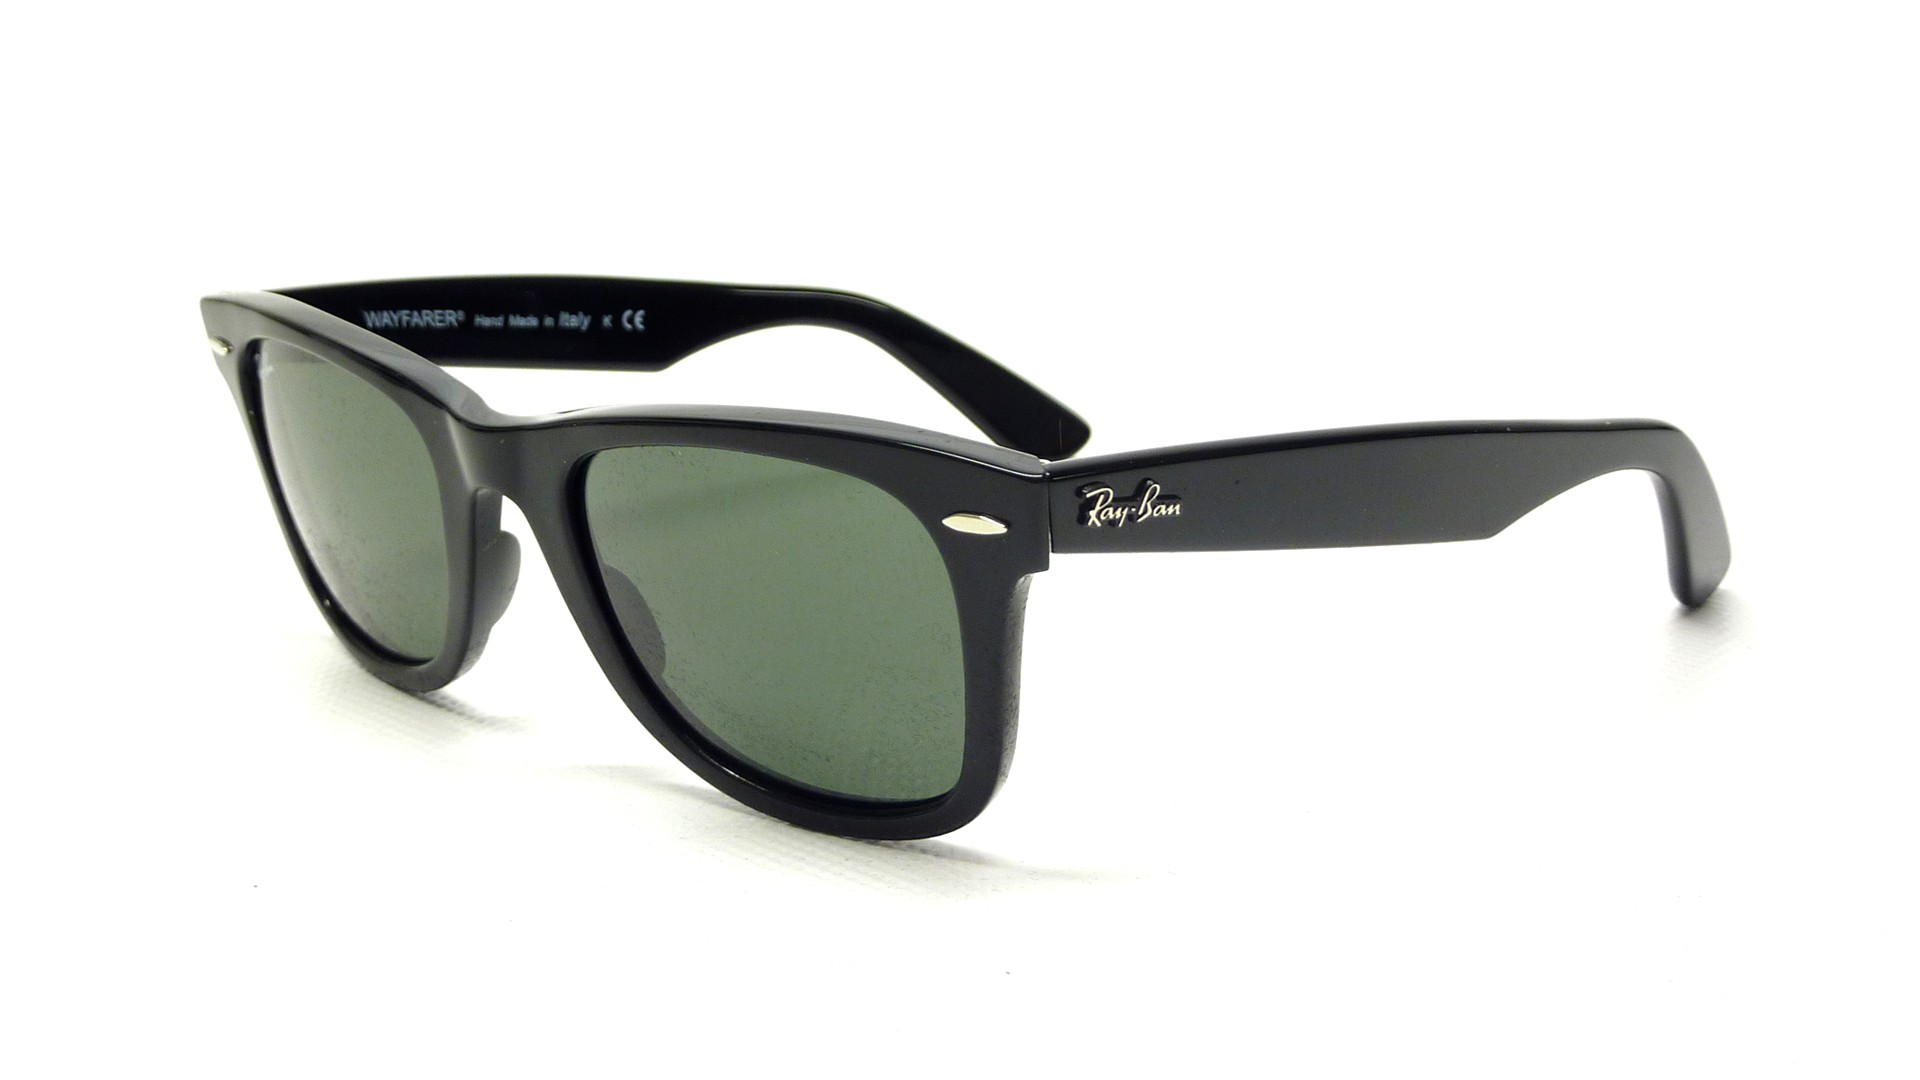 ray ban rb2140 original wayfarer sunglasses  ray ban original wayfarer black rb2140 901 50 22